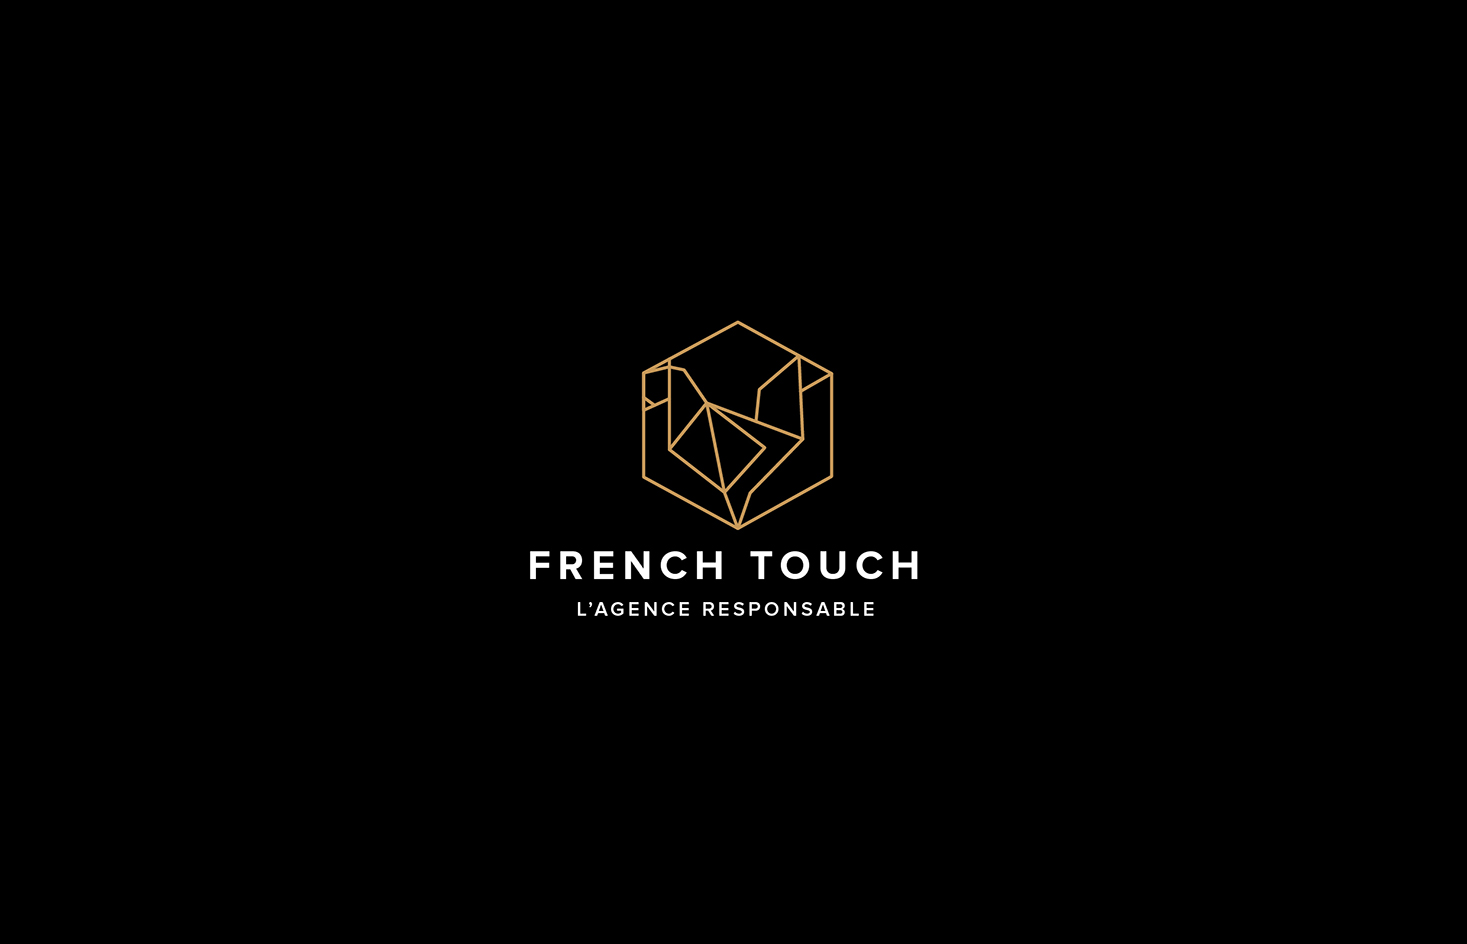 Works_39_FrenchTouch_1